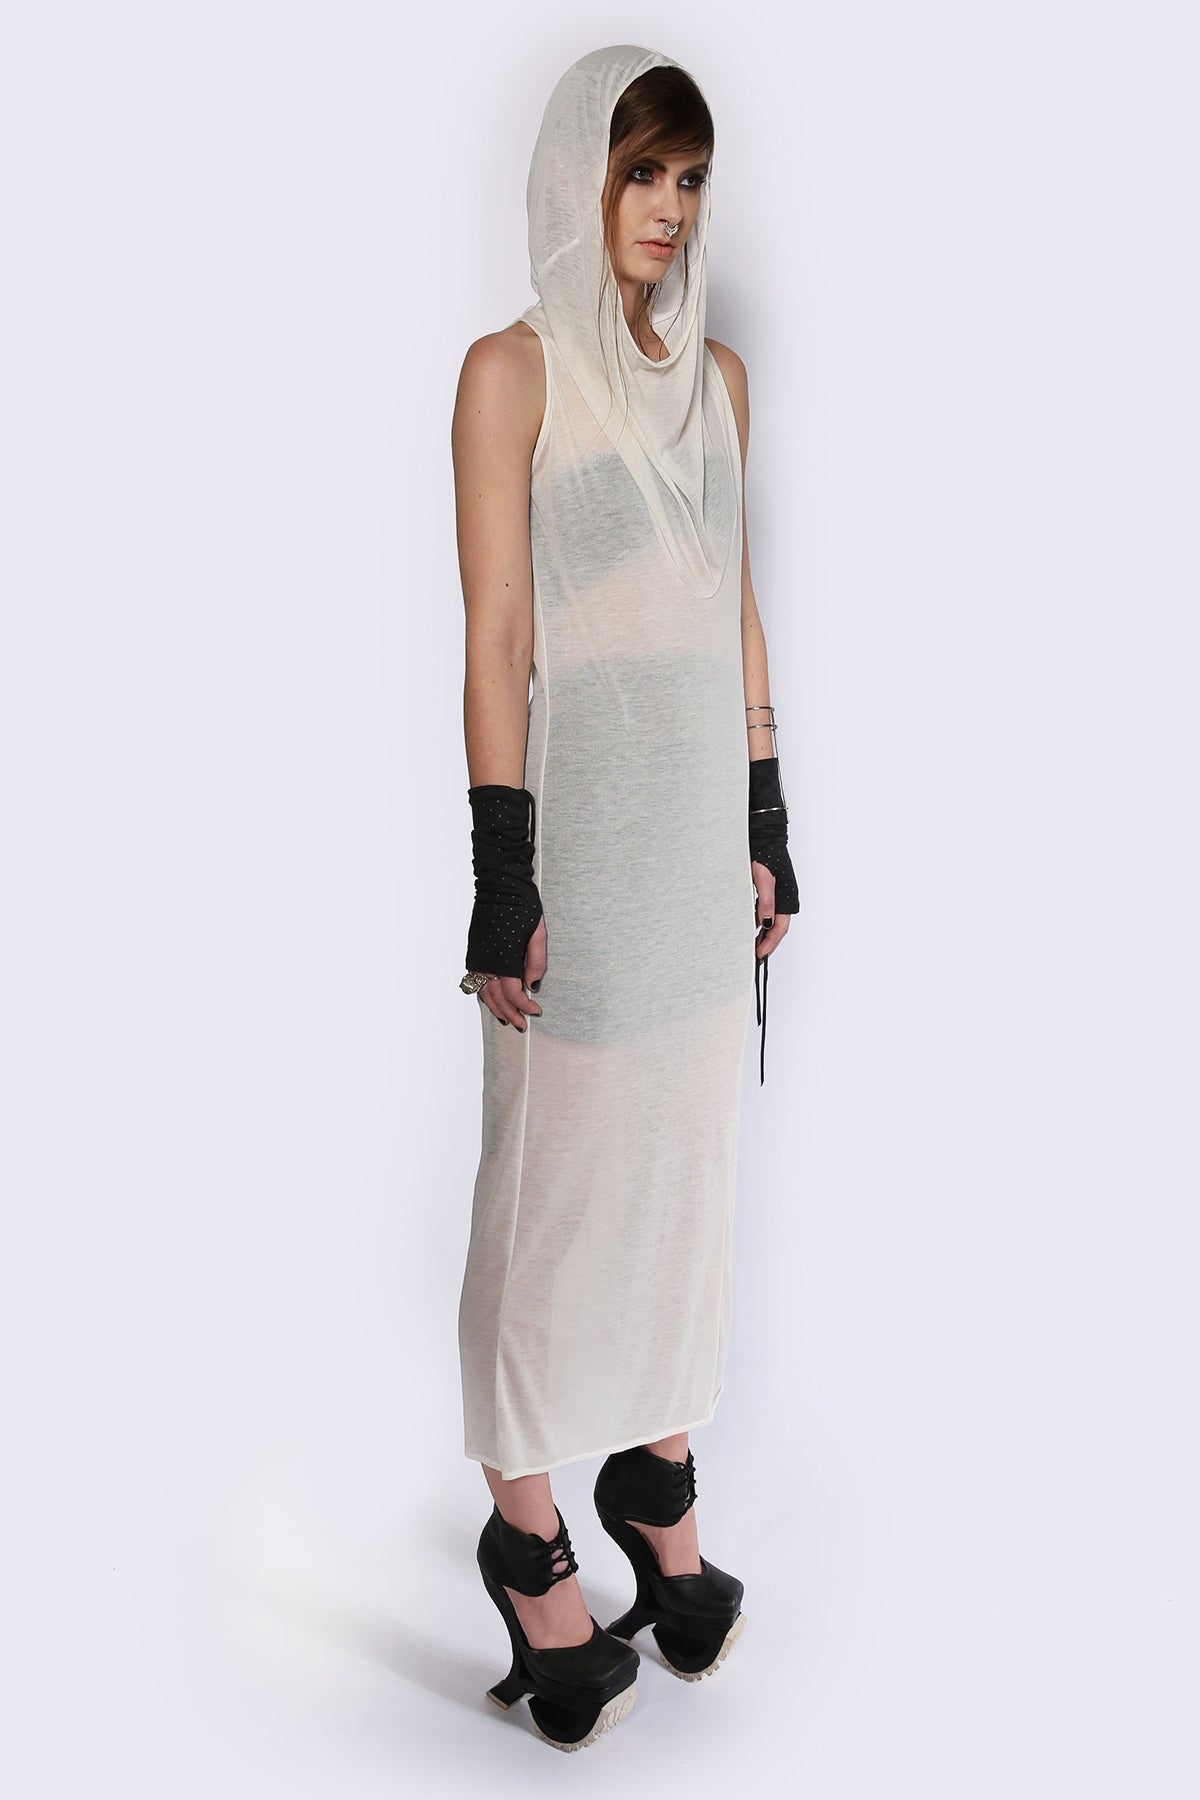 See-through Hooded Dress Dresses The Fashion Advocate ethical Australian fashion designer boutique Melbourne sustainable clothes